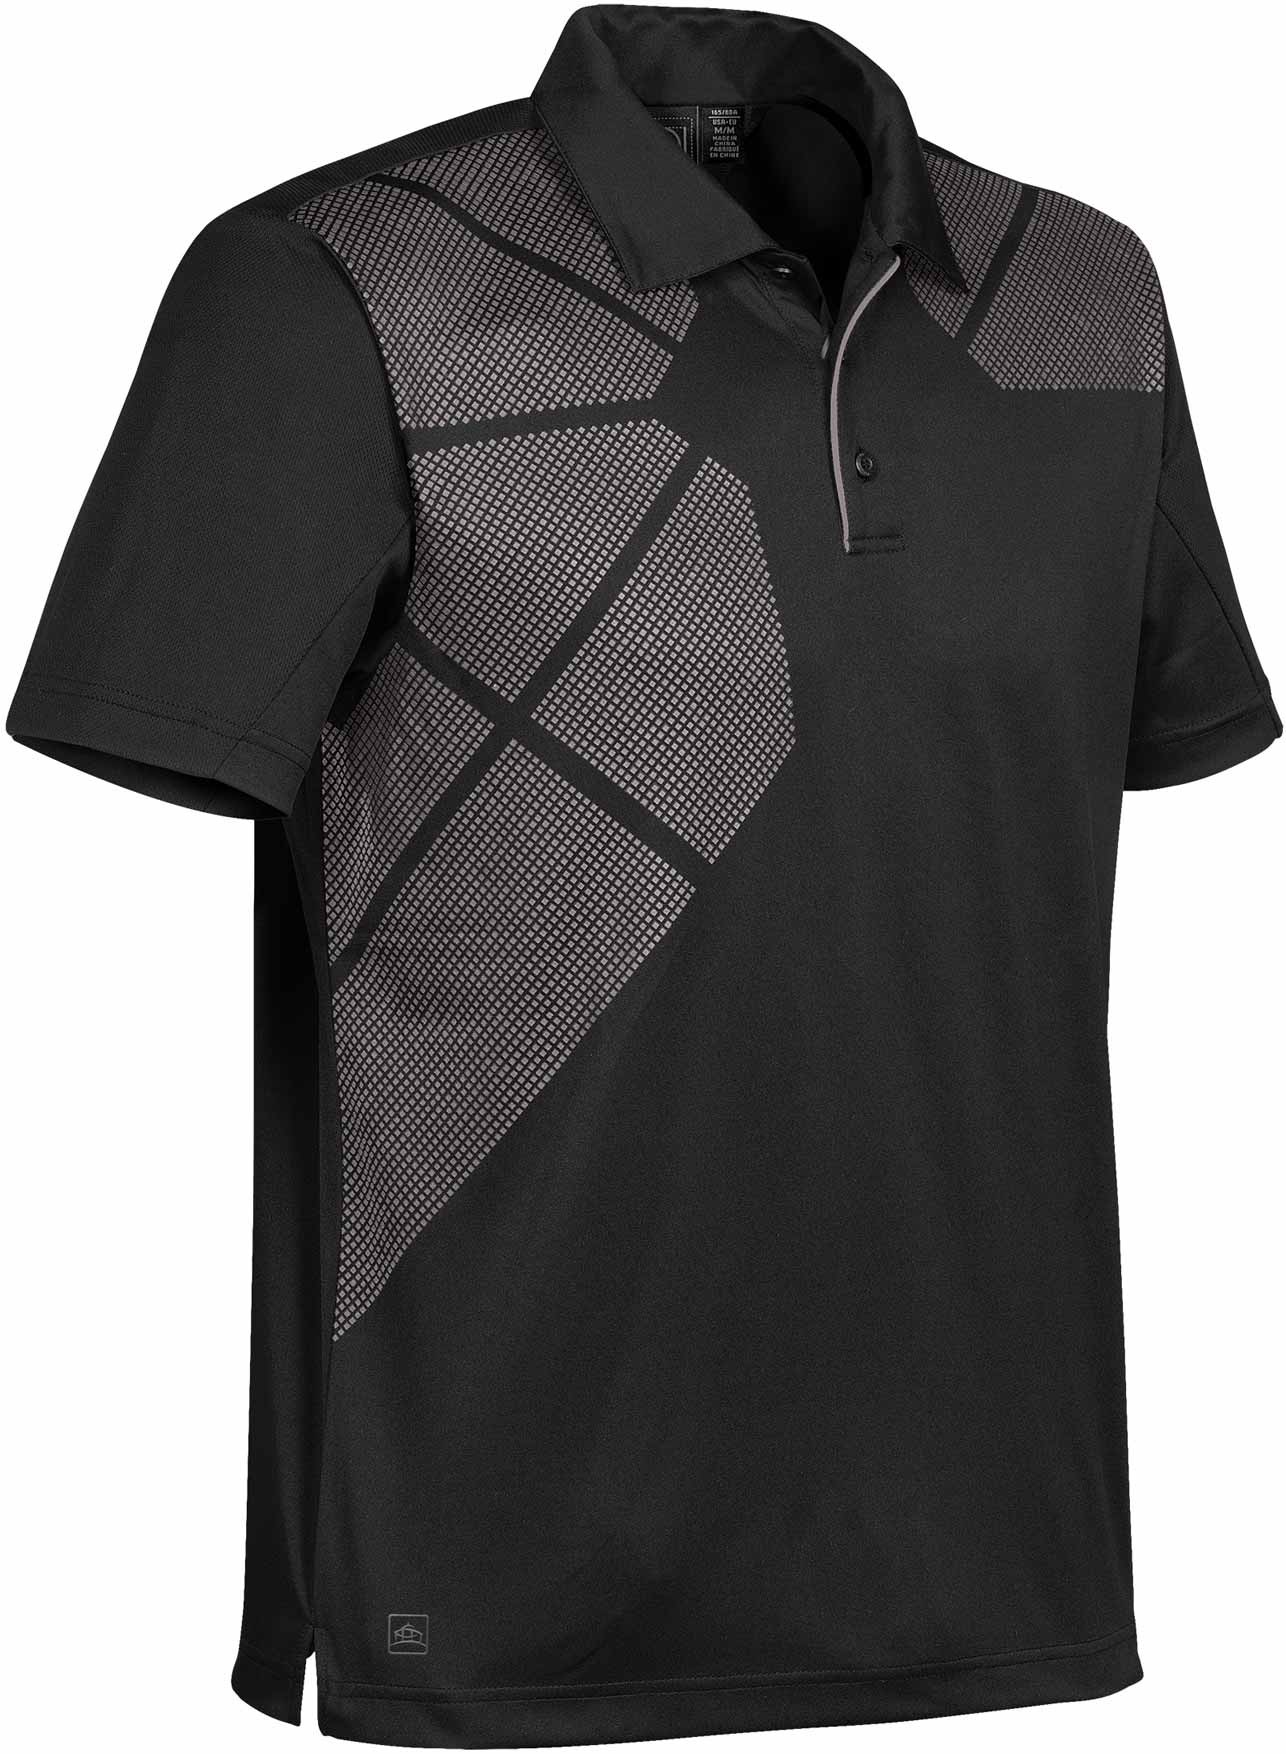 Stormtech OPX-1 - Men's Prism Performance Polo